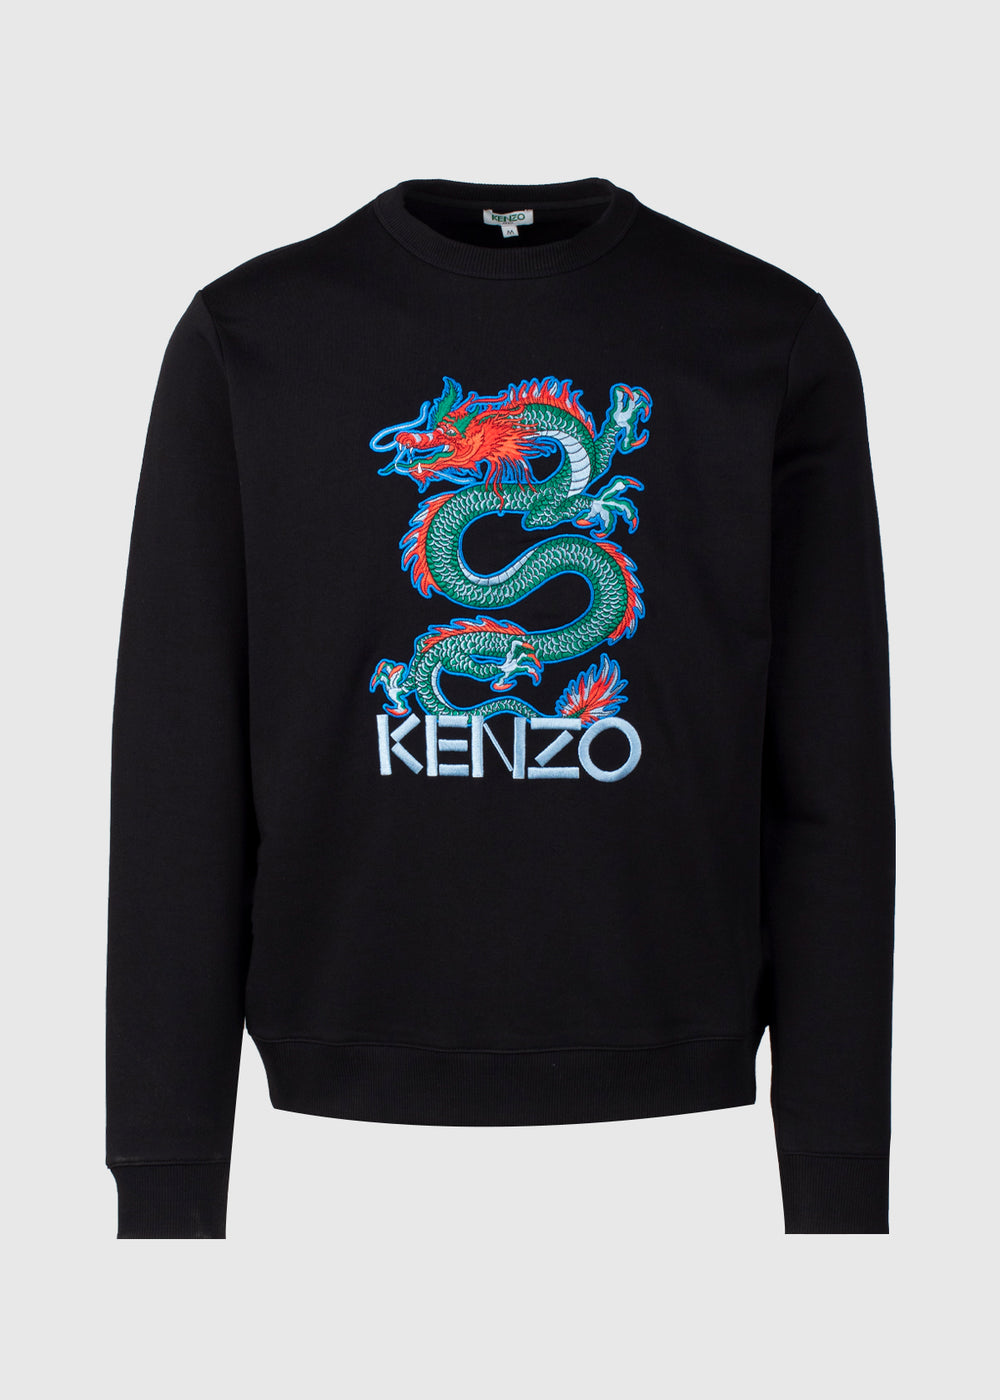 dragon-sweatshirt-f965sw1214me-blk-1